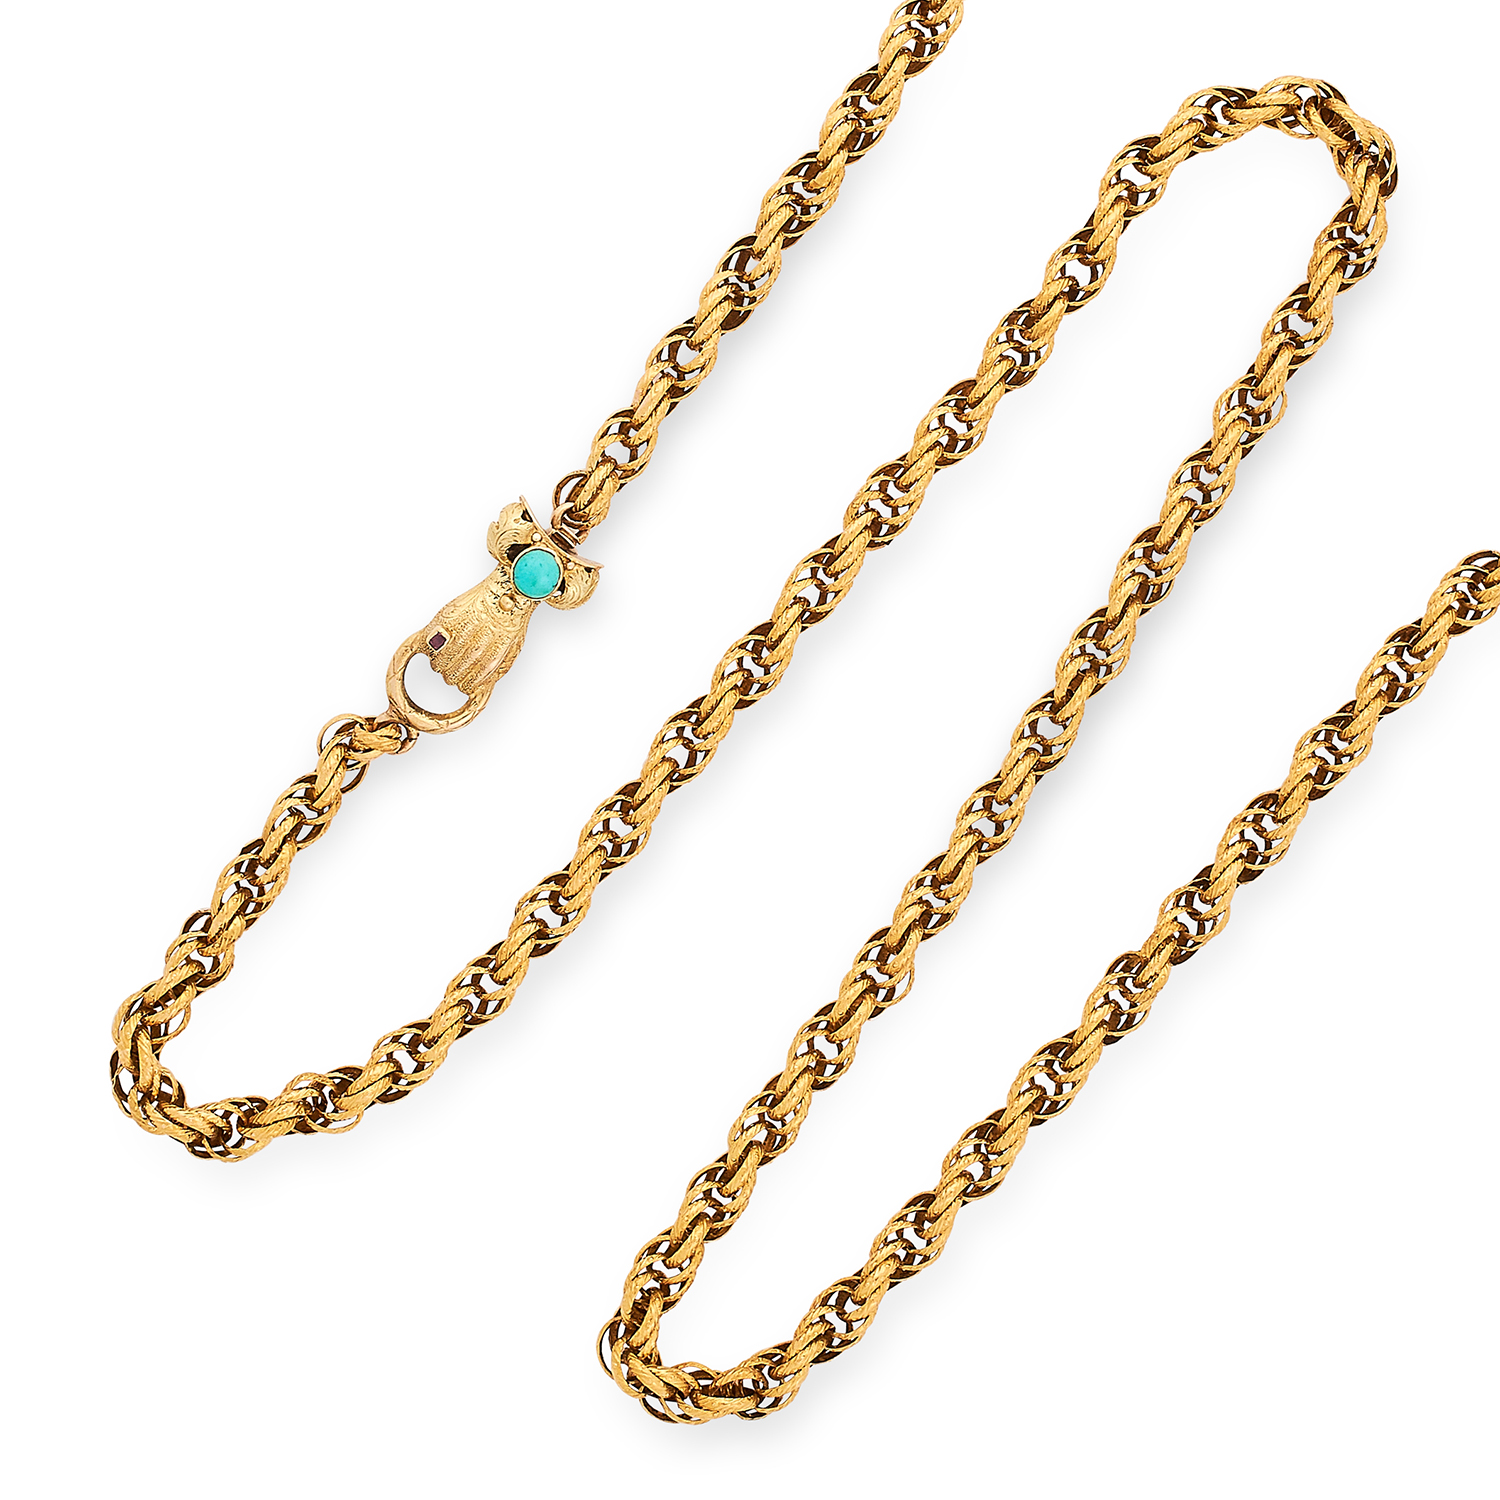 ANTIQUE GUARD CHAIN the hand clasp set with turquoise and a ruby, 78.5cm, 25.3g. - Bild 2 aus 2